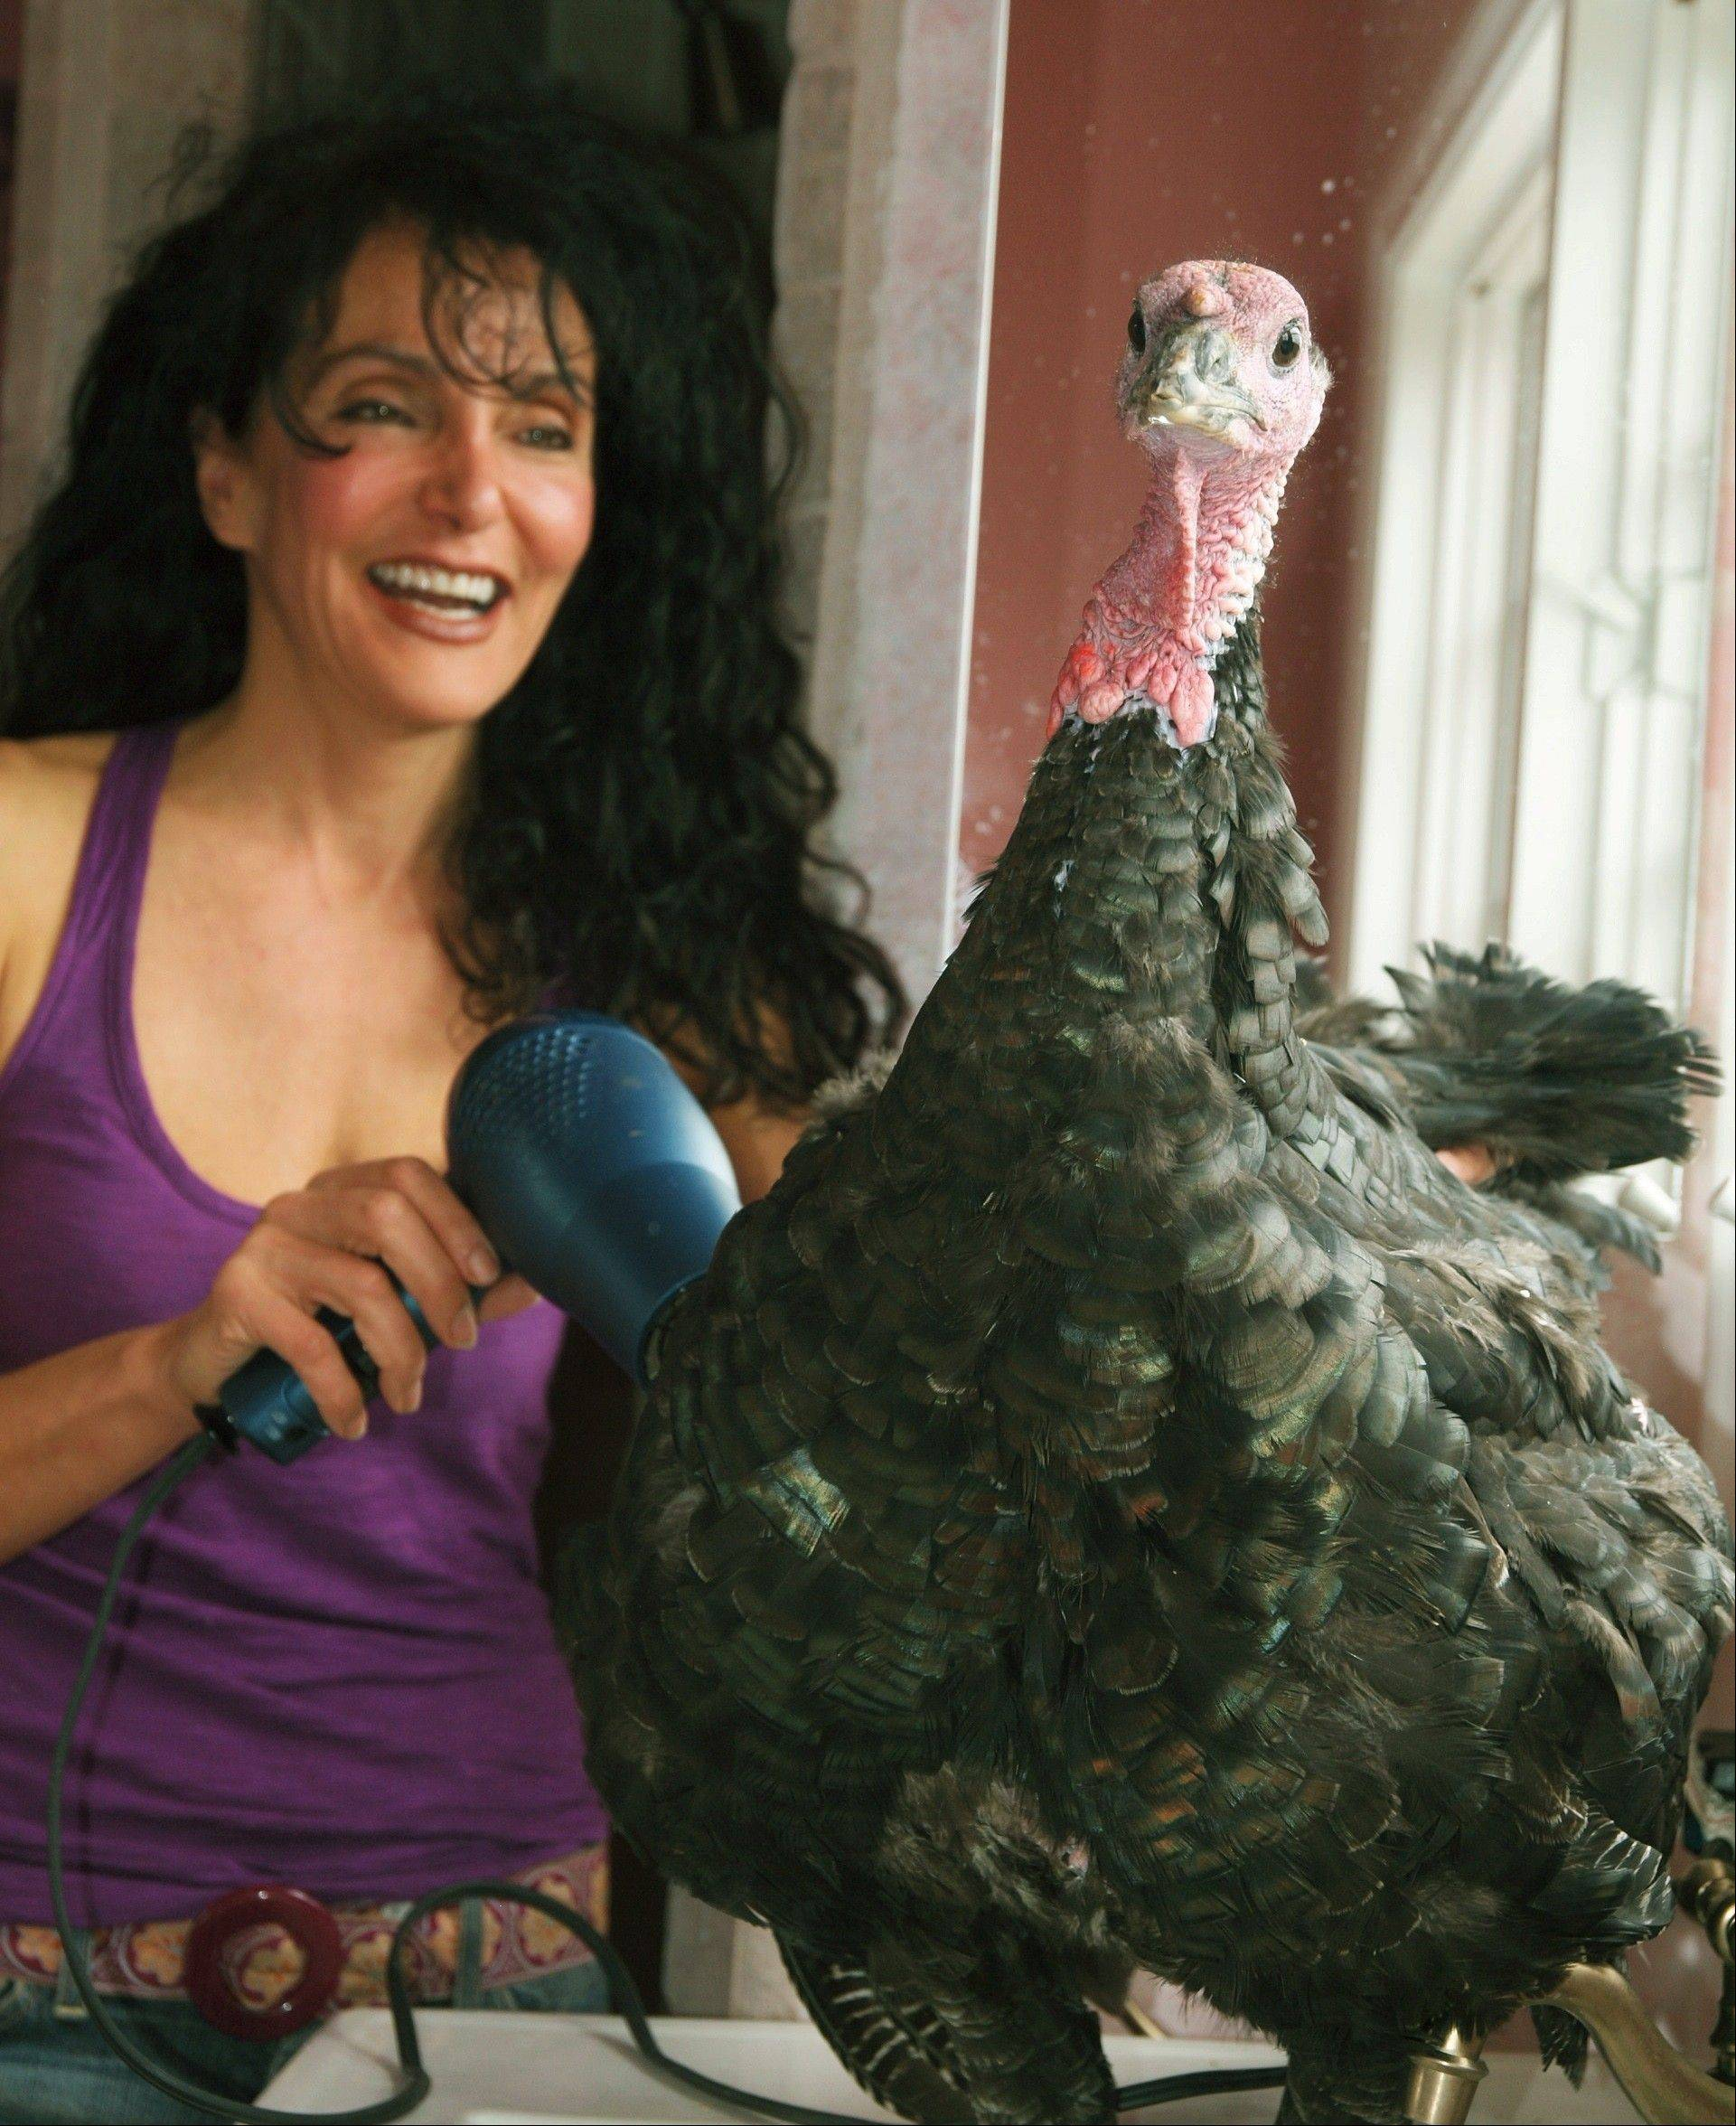 Karen Dawn and her pet turkey, Russell. He�s getting his feathers blown dry at home in Pacific Palisades, Calif.